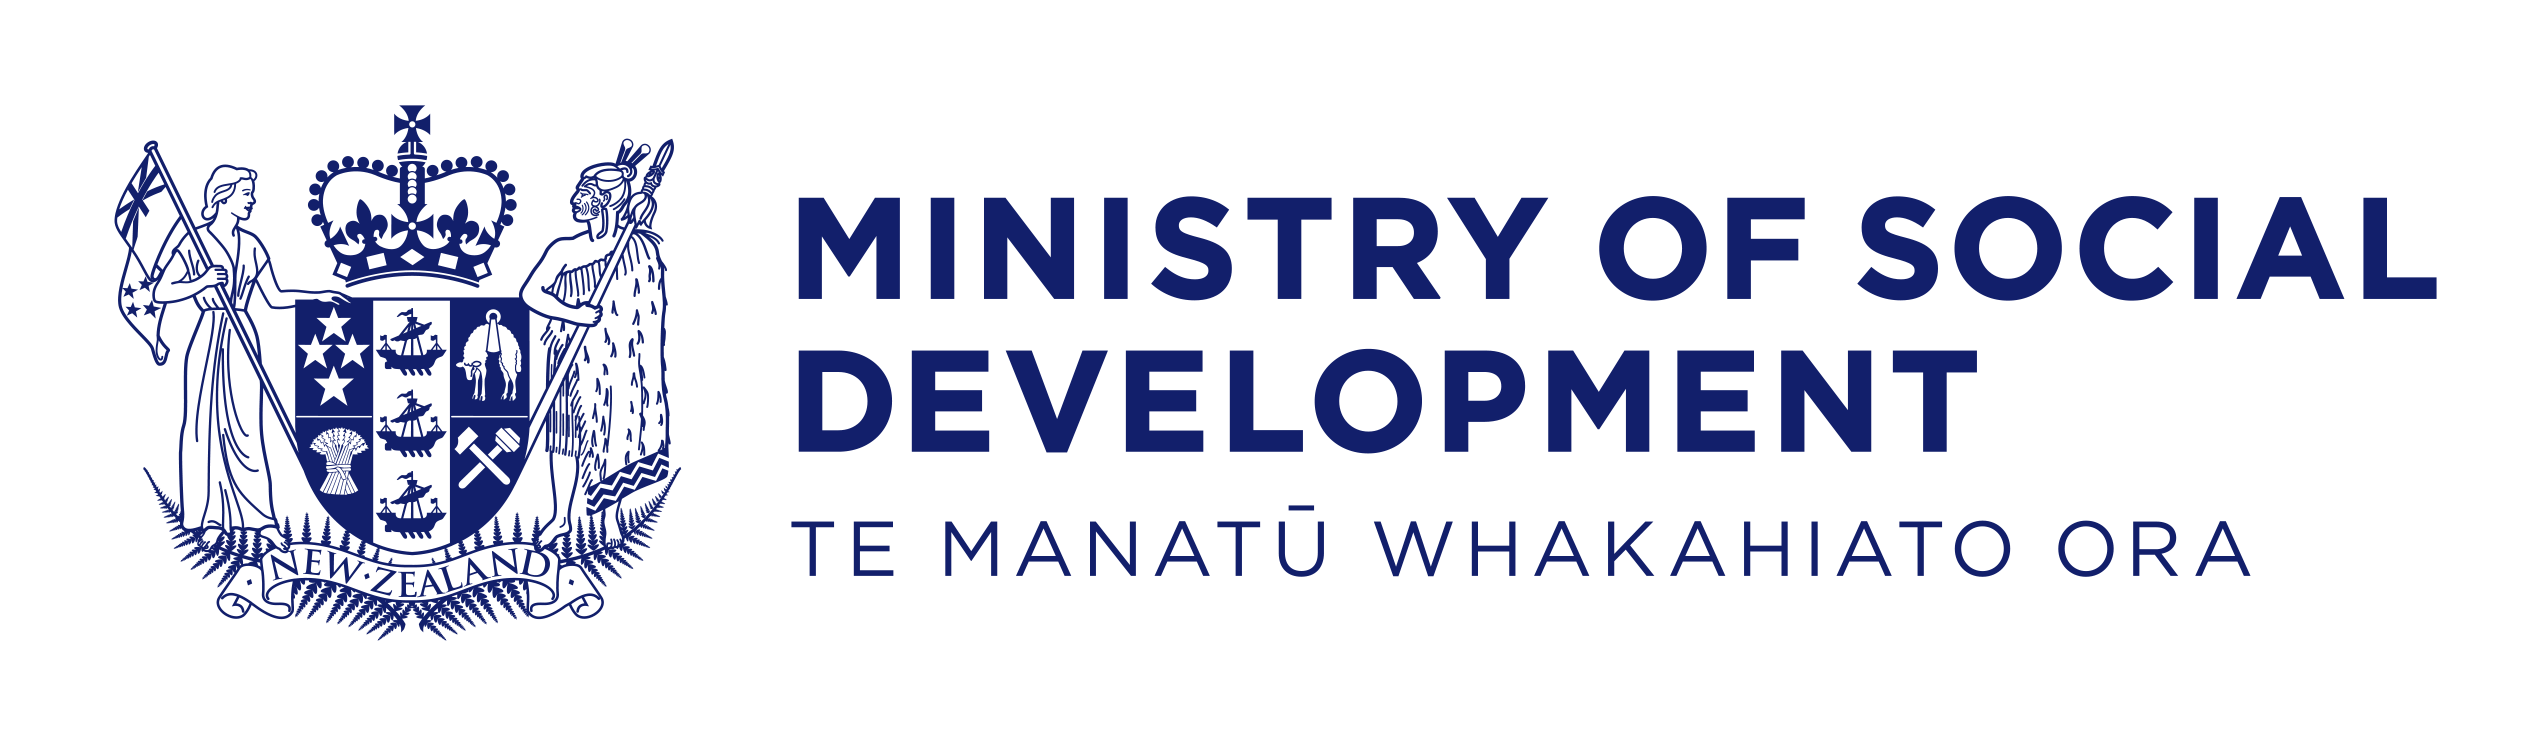 Ministry of Social Developement logo